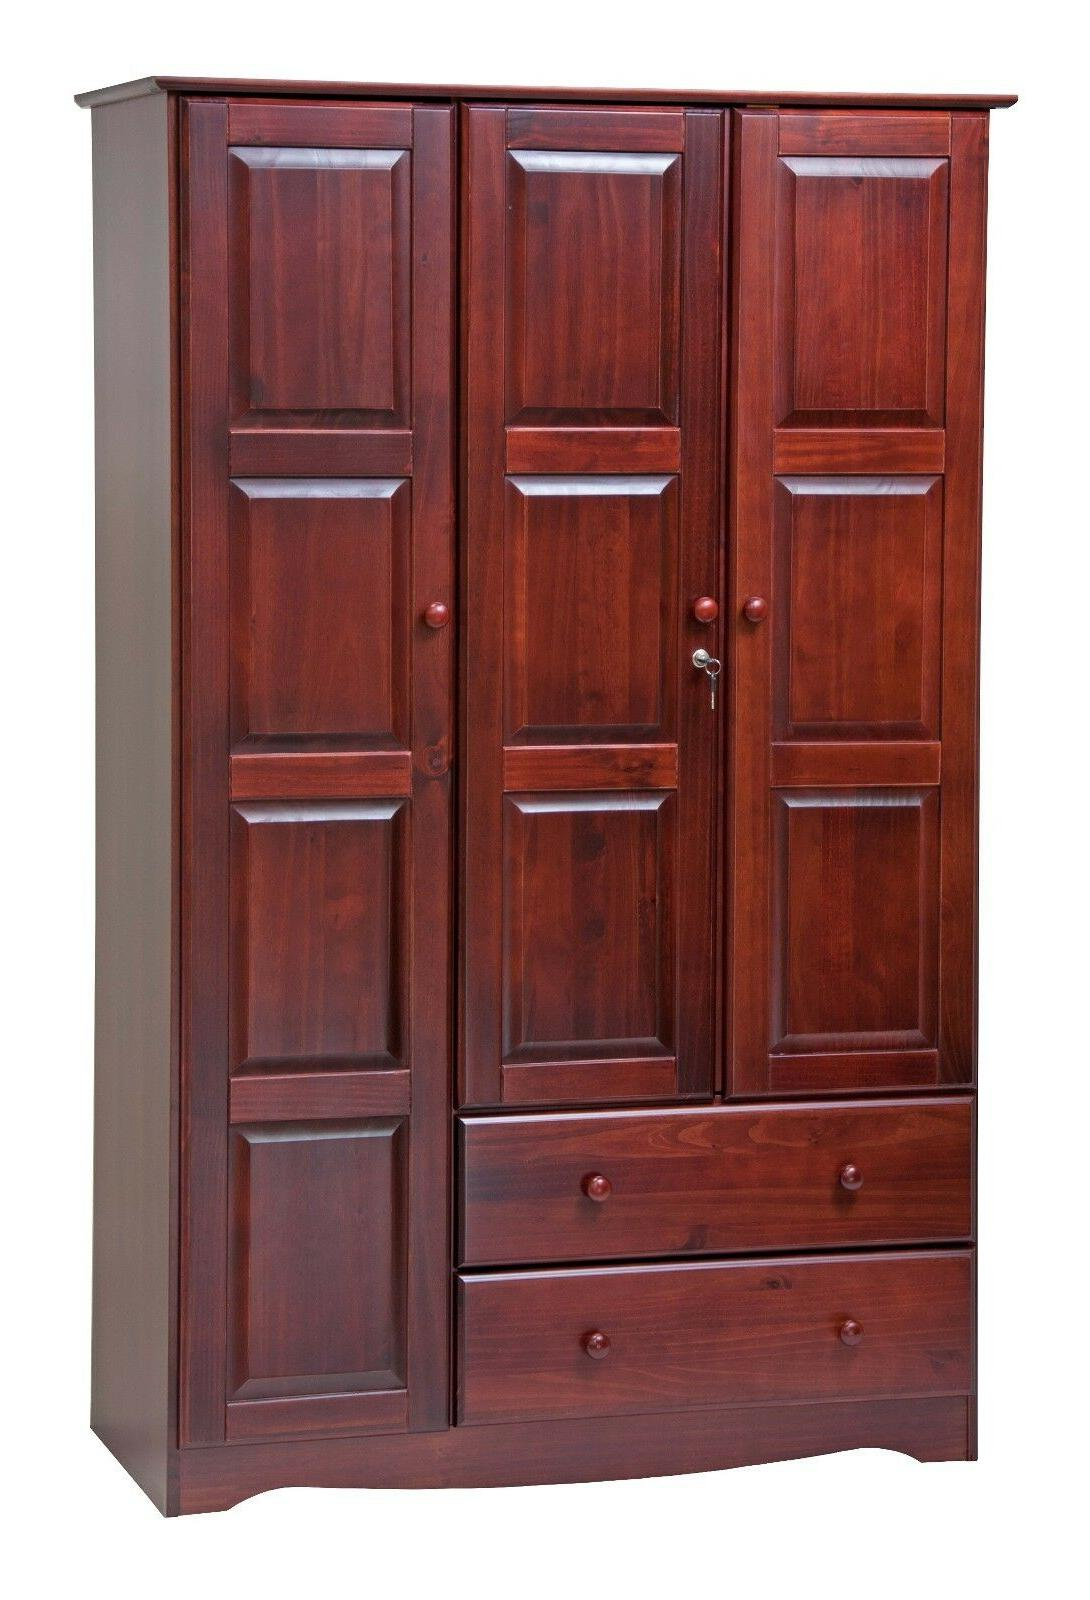 100% Solid Wood Wardrobe/Armoire/Closet by Palace 5